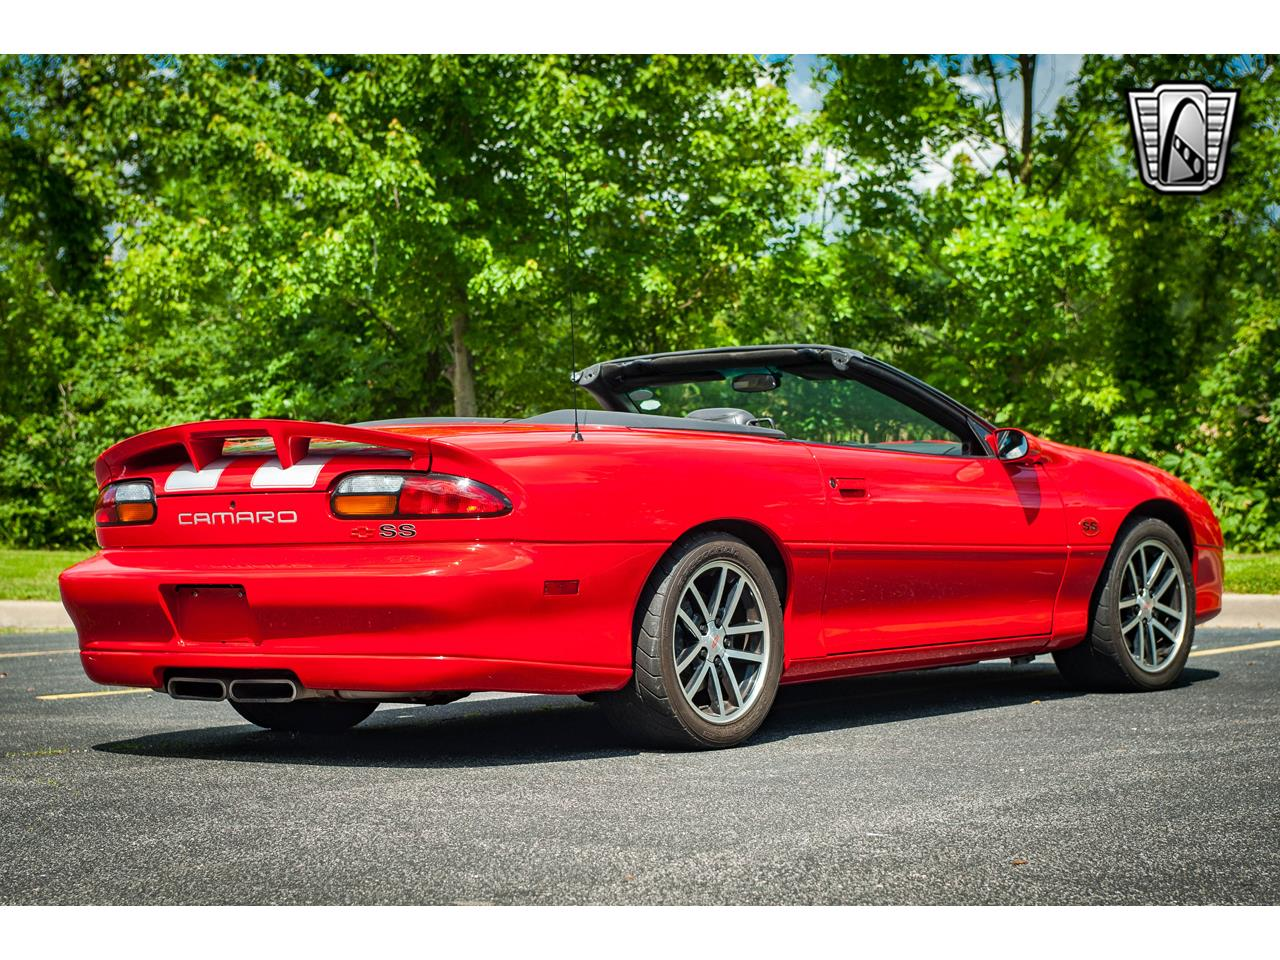 Large Picture of '02 Camaro - $33,500.00 - QB9Z